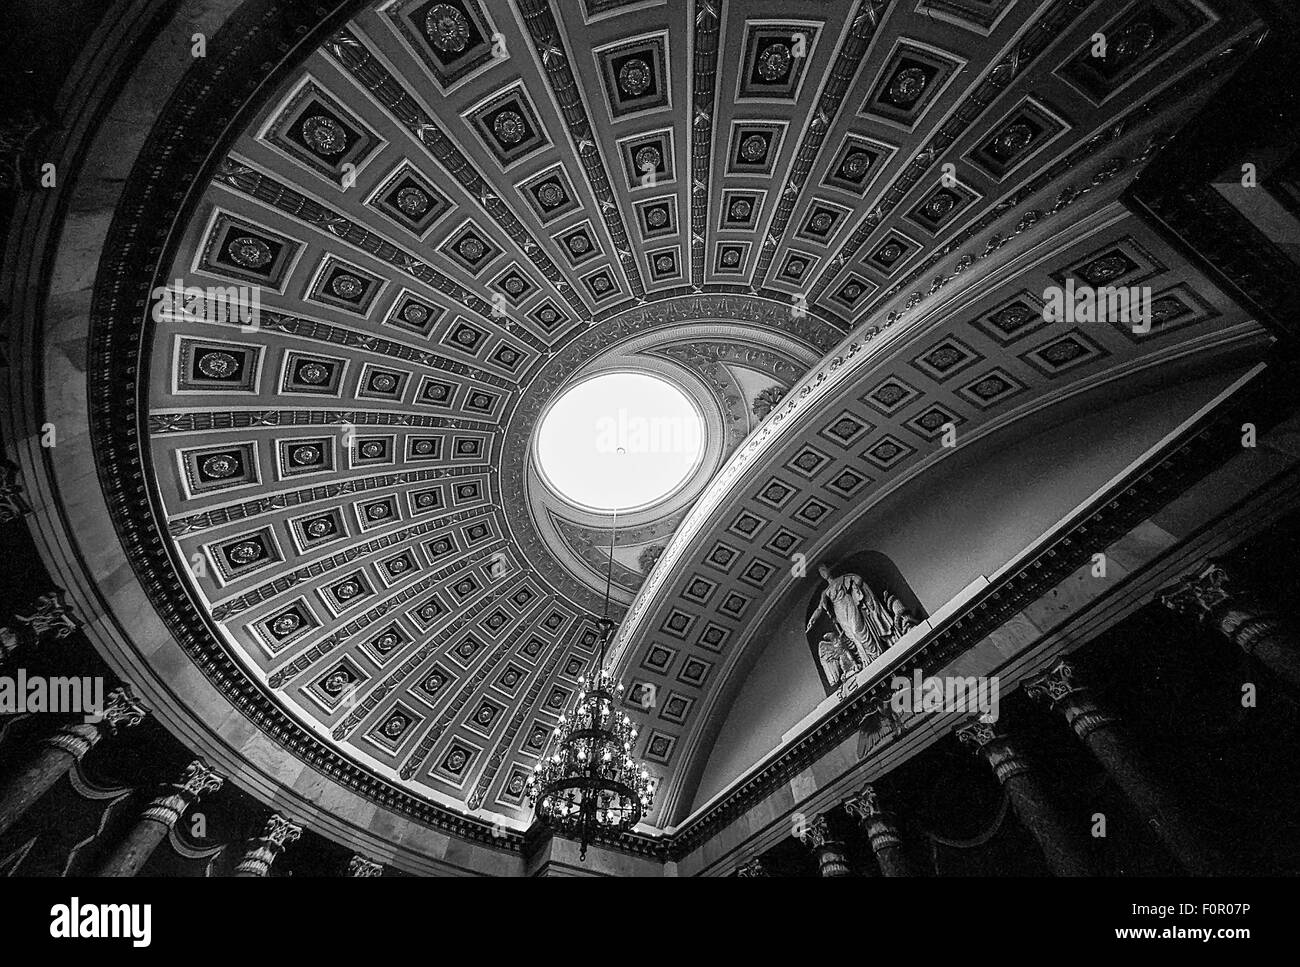 Ceiling Of The Old House Of Representatives Chamber - Stock Image